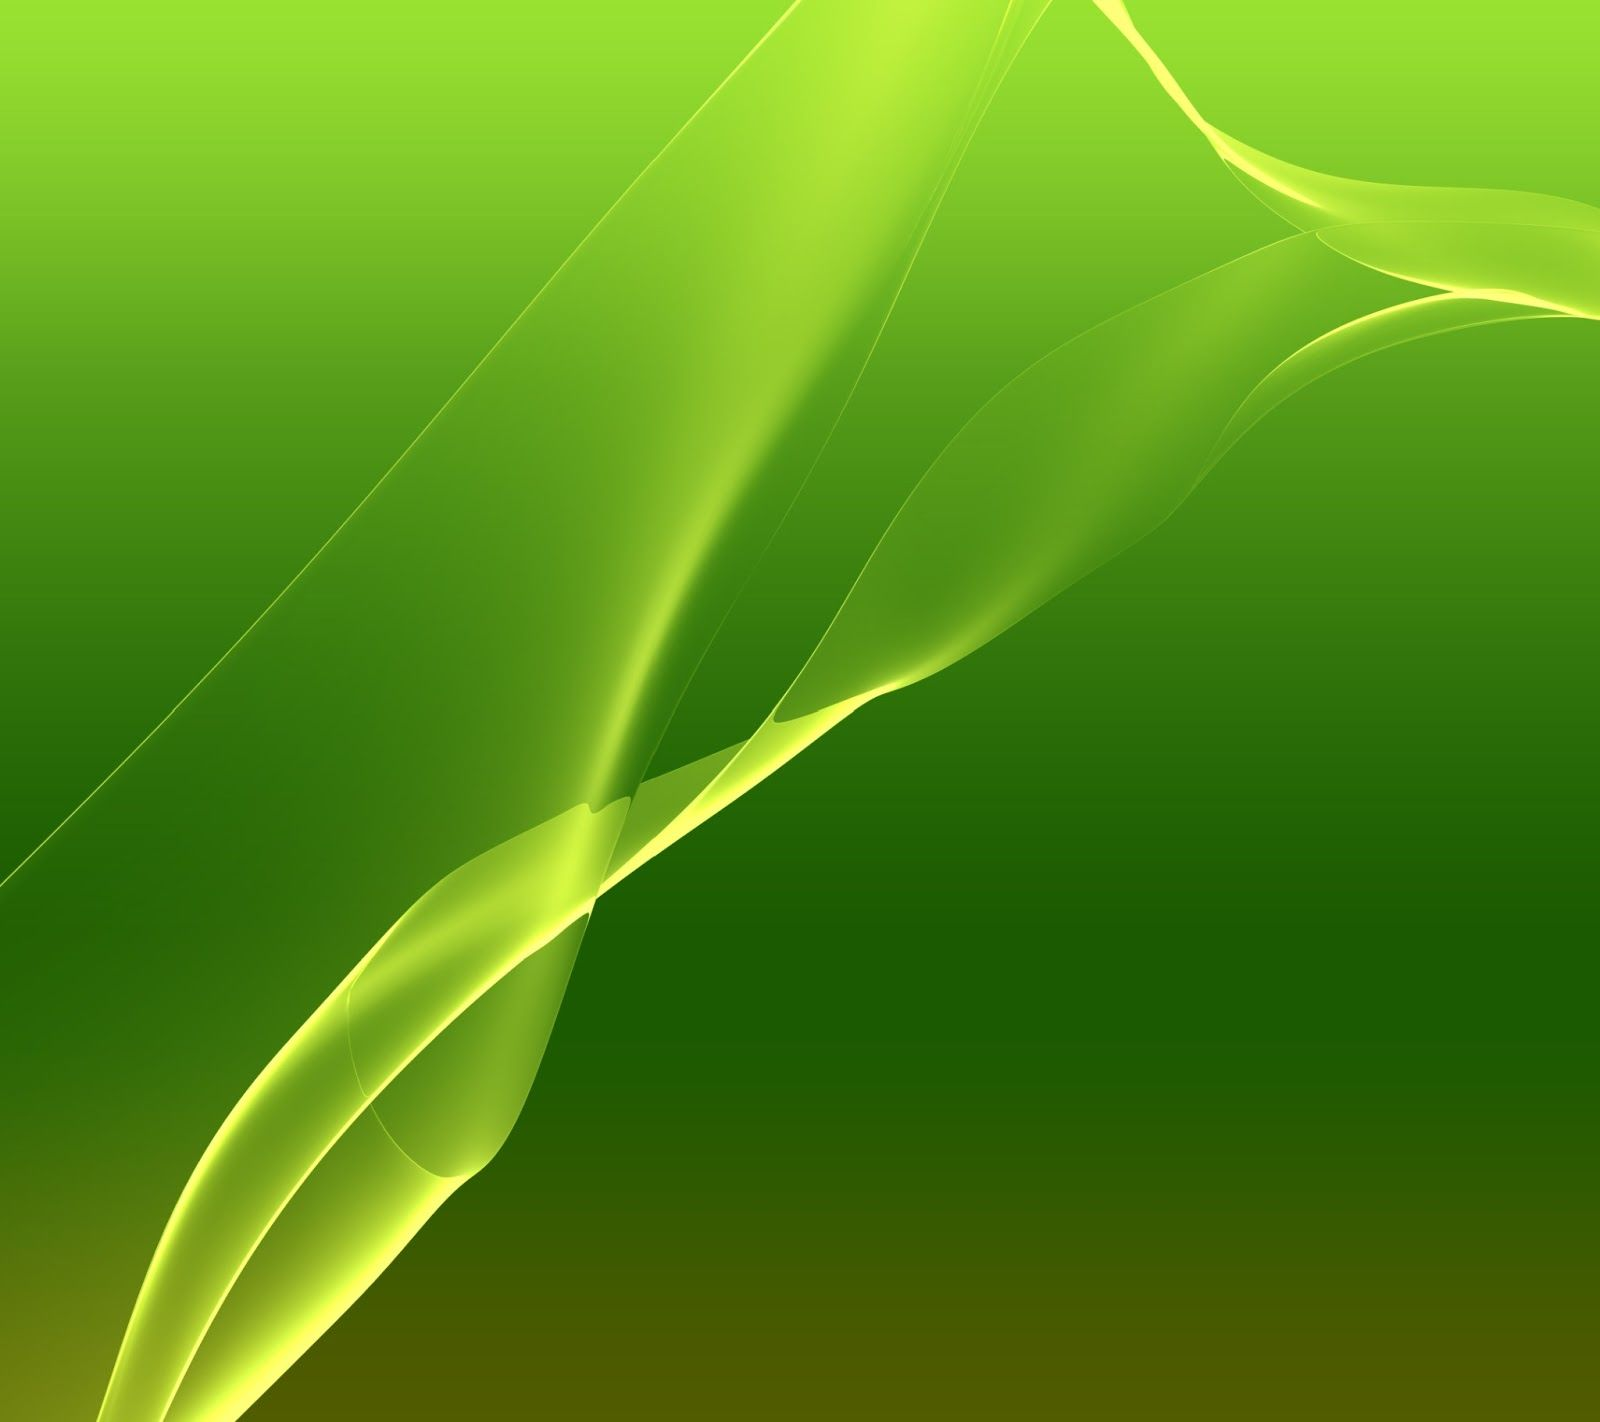 Xperia Z Ultra Hd Wallpapers Hd Wallpaper Green Wallpaper Wallpaper